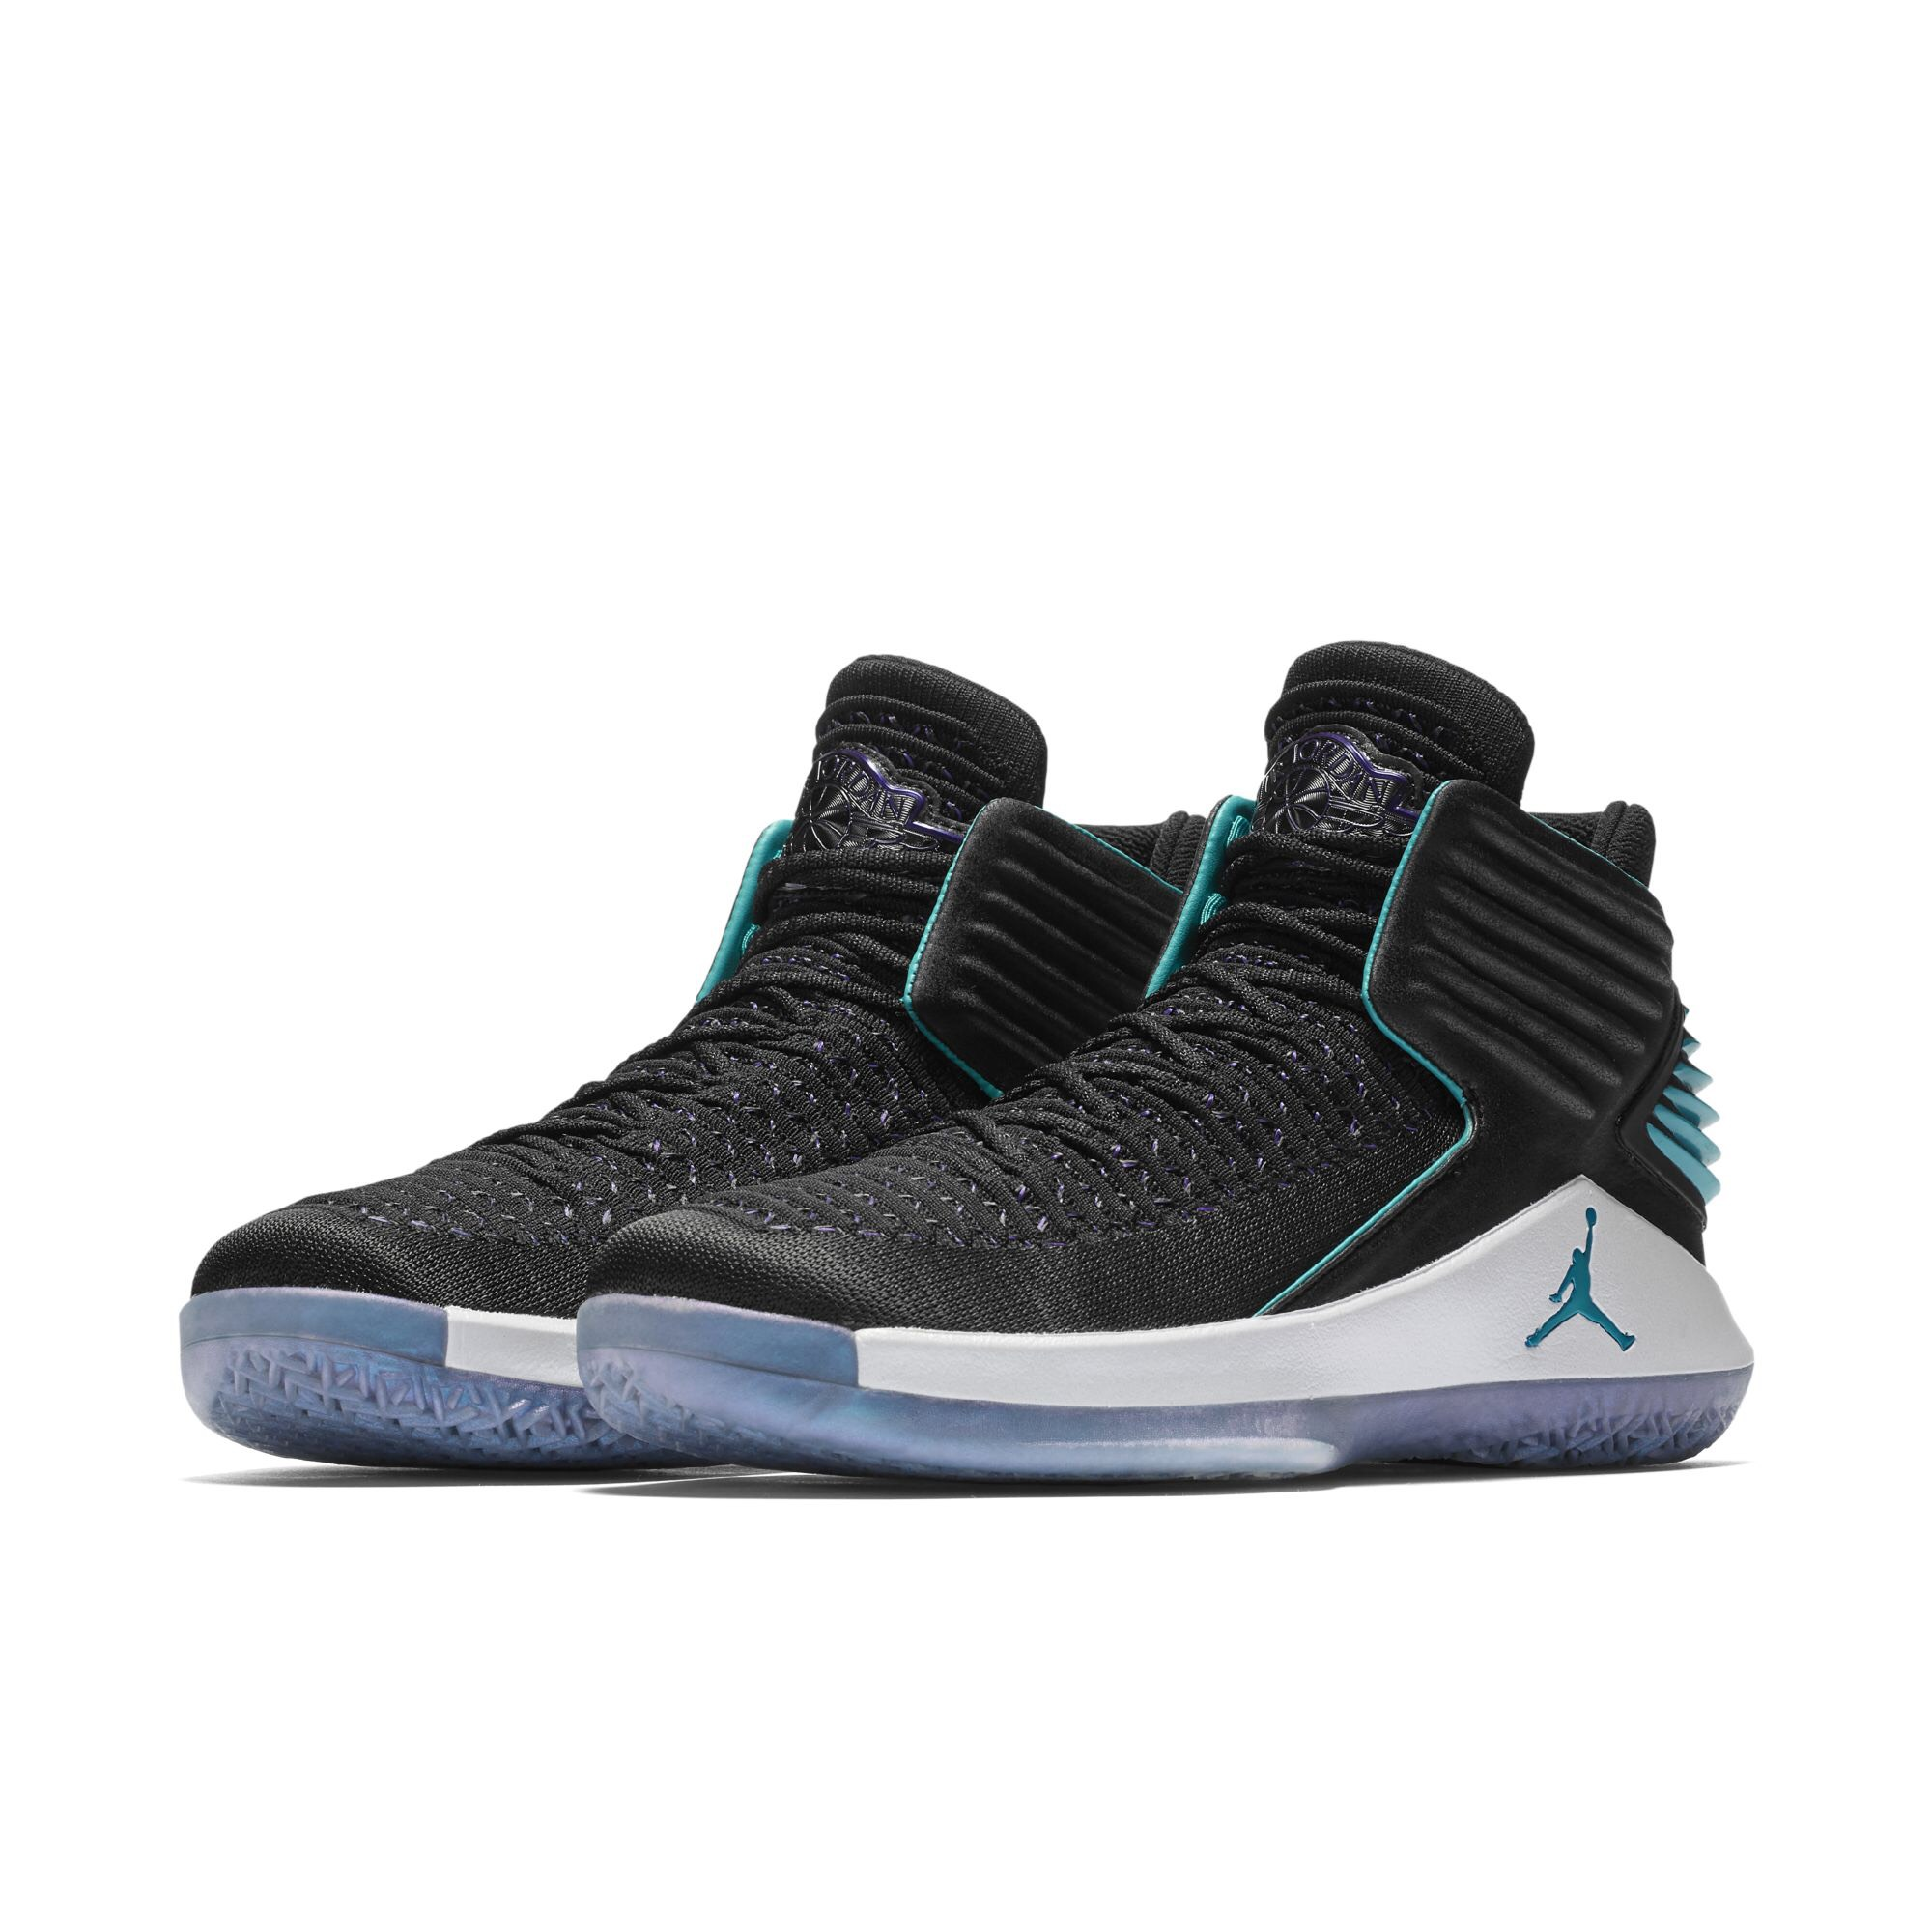 a76f510330a44d ... Hornets Black Teal White Copuon ... BUY Air Jordan 32 MVP Kixify  Marketplace  air jordan 32 ceo 1 ...